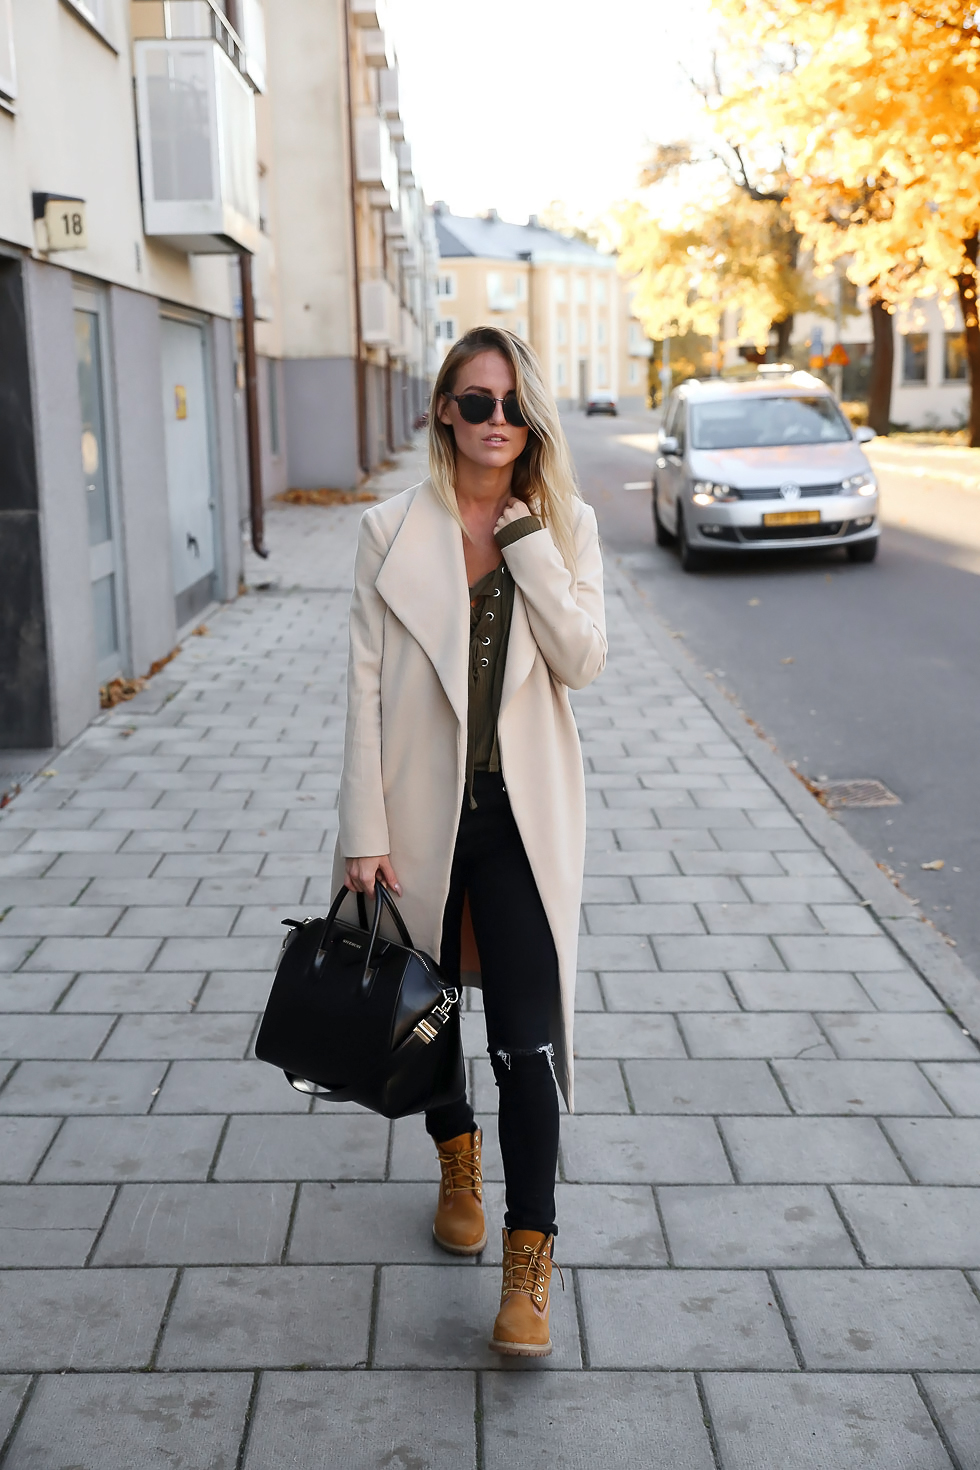 Kristin Sundberg rocks the Timberland trend, looking uber cool in a white coat and black skinny jeans. Top: Gina Tricot, Boots: Timberland, Bag: Givenchy.